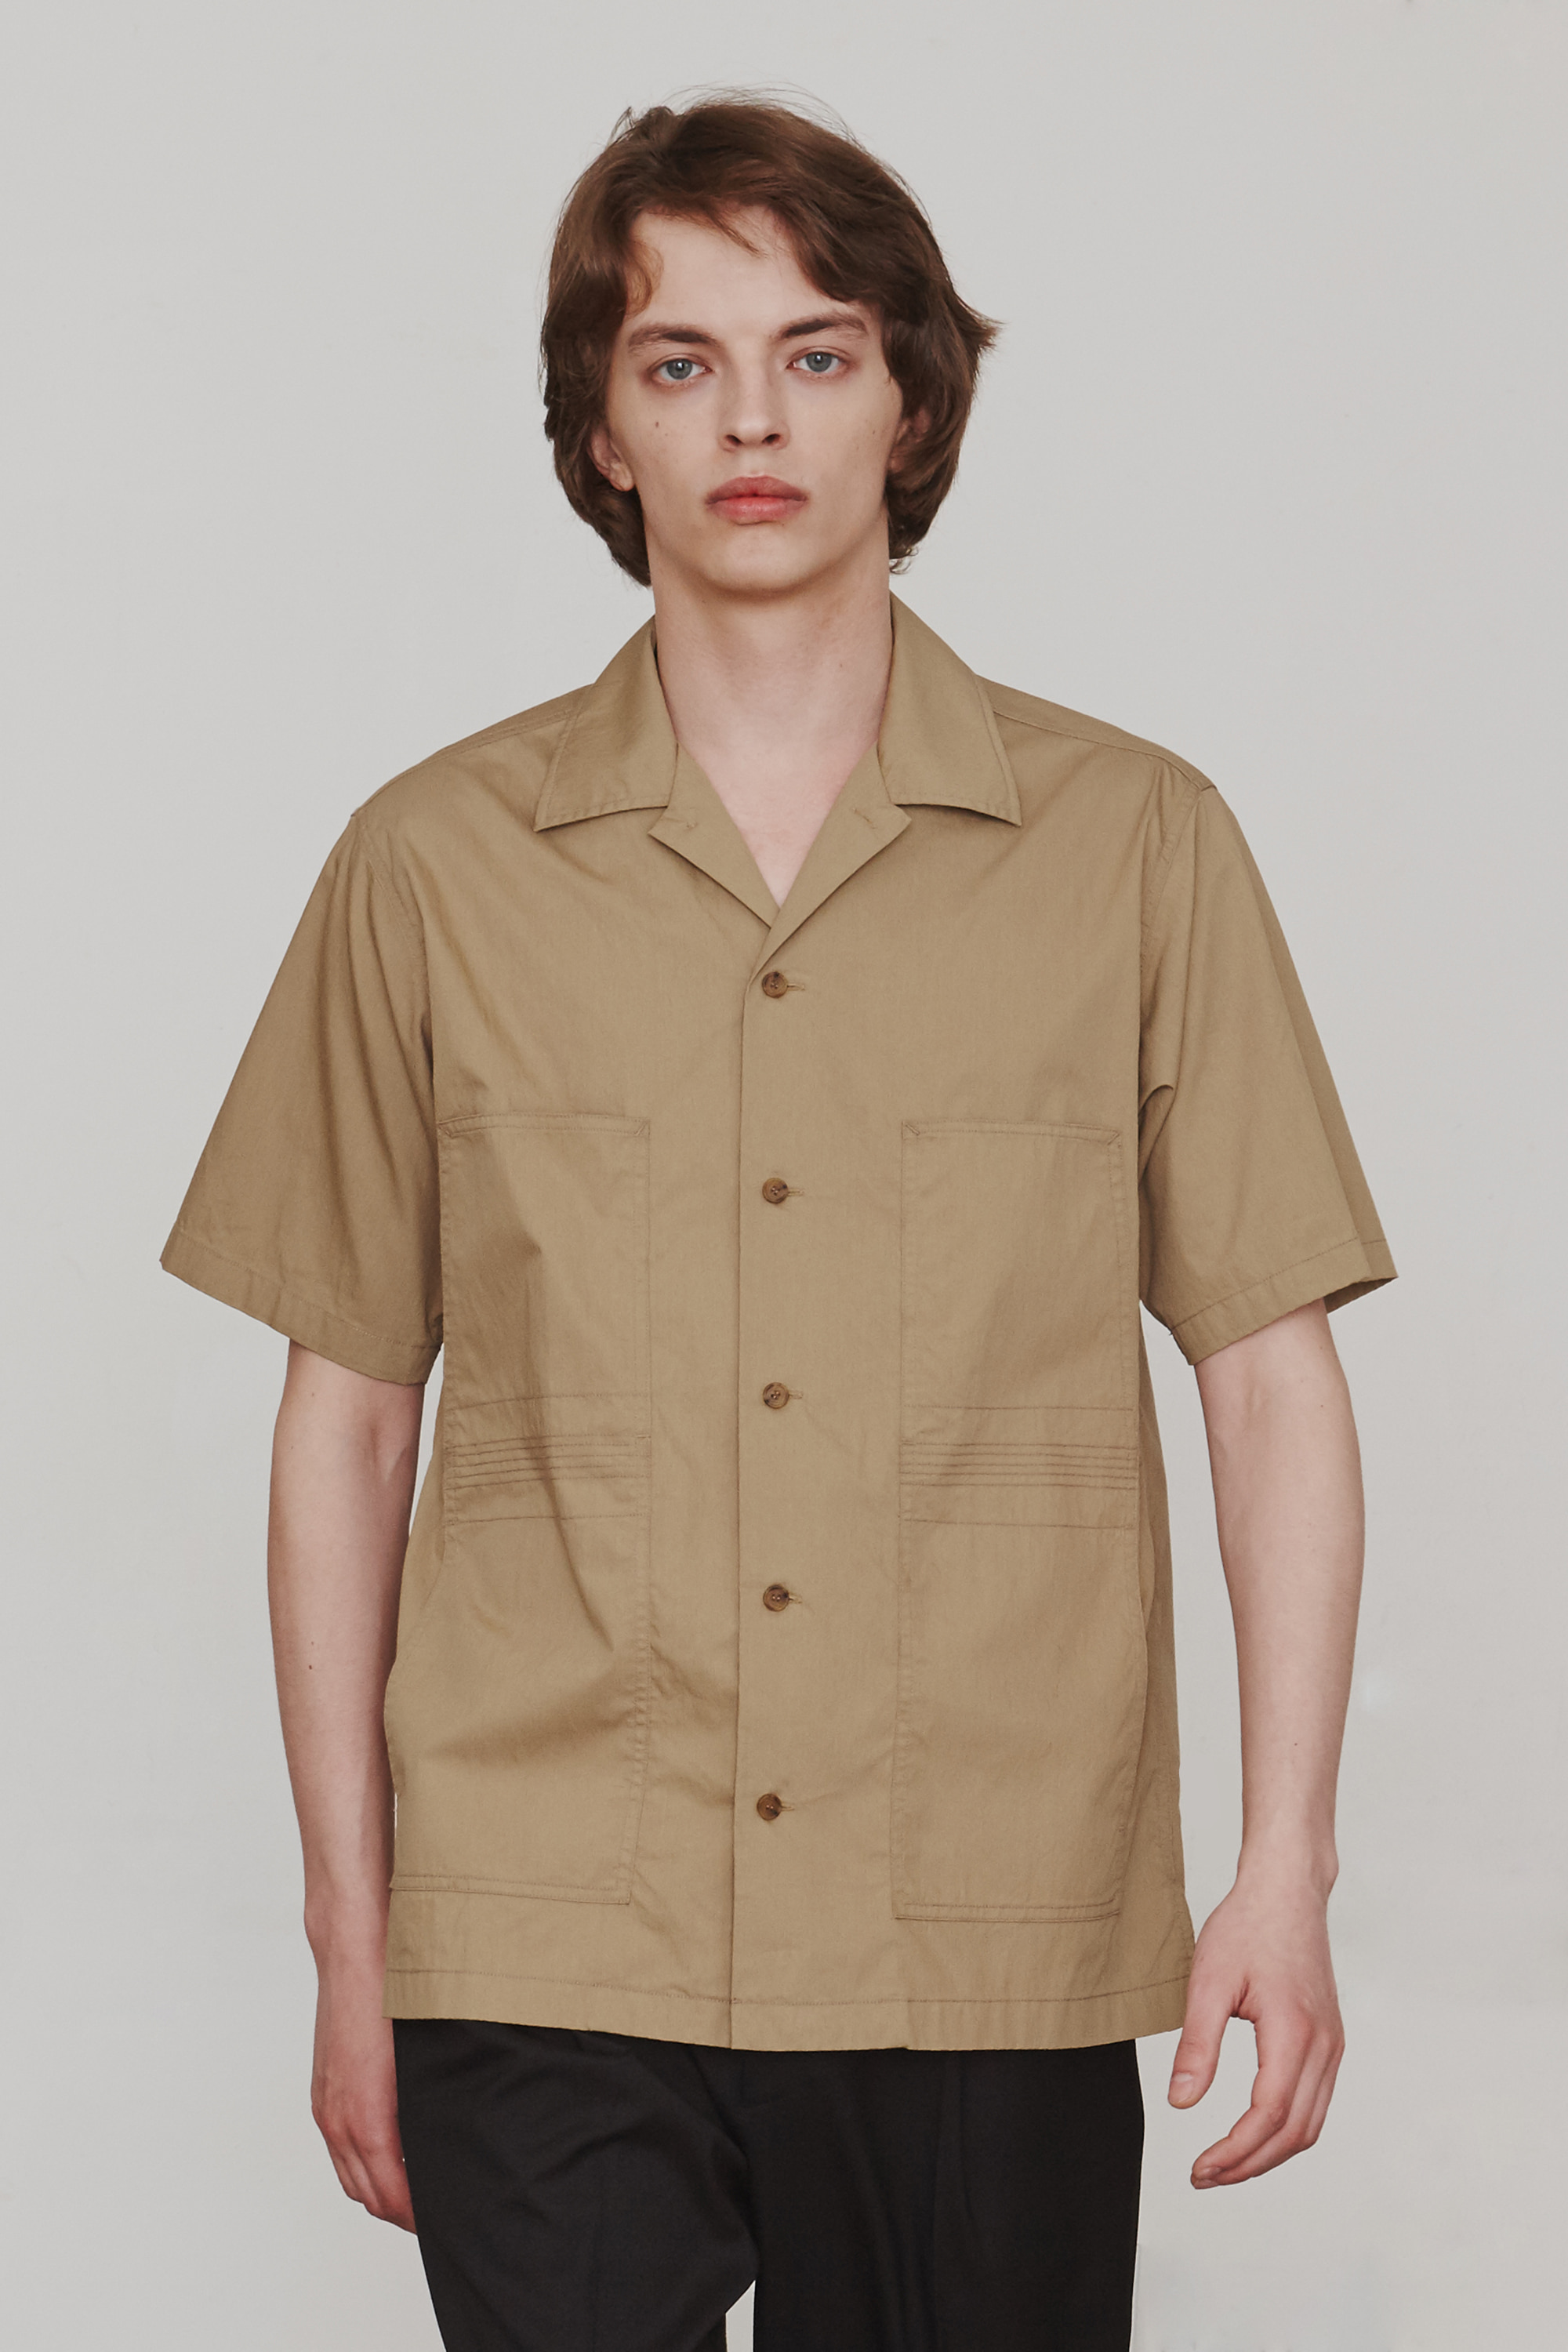 Finger Stitch Shirts (Beige)ESFAI(에스파이)